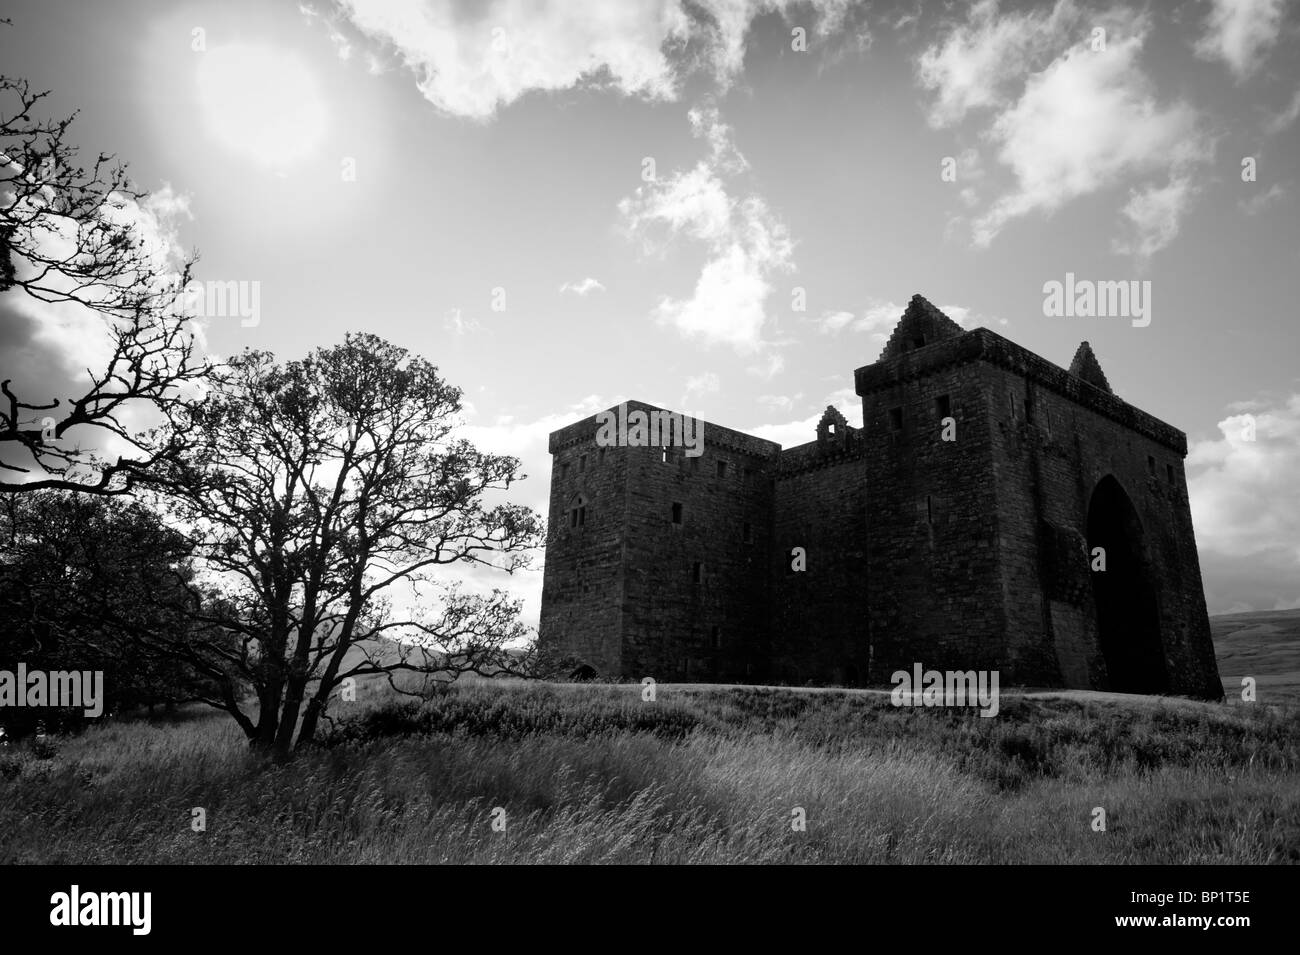 Hermitage Castle on the Scottish Border - a foreboding and dark stone tower almost without windows - Stock Image